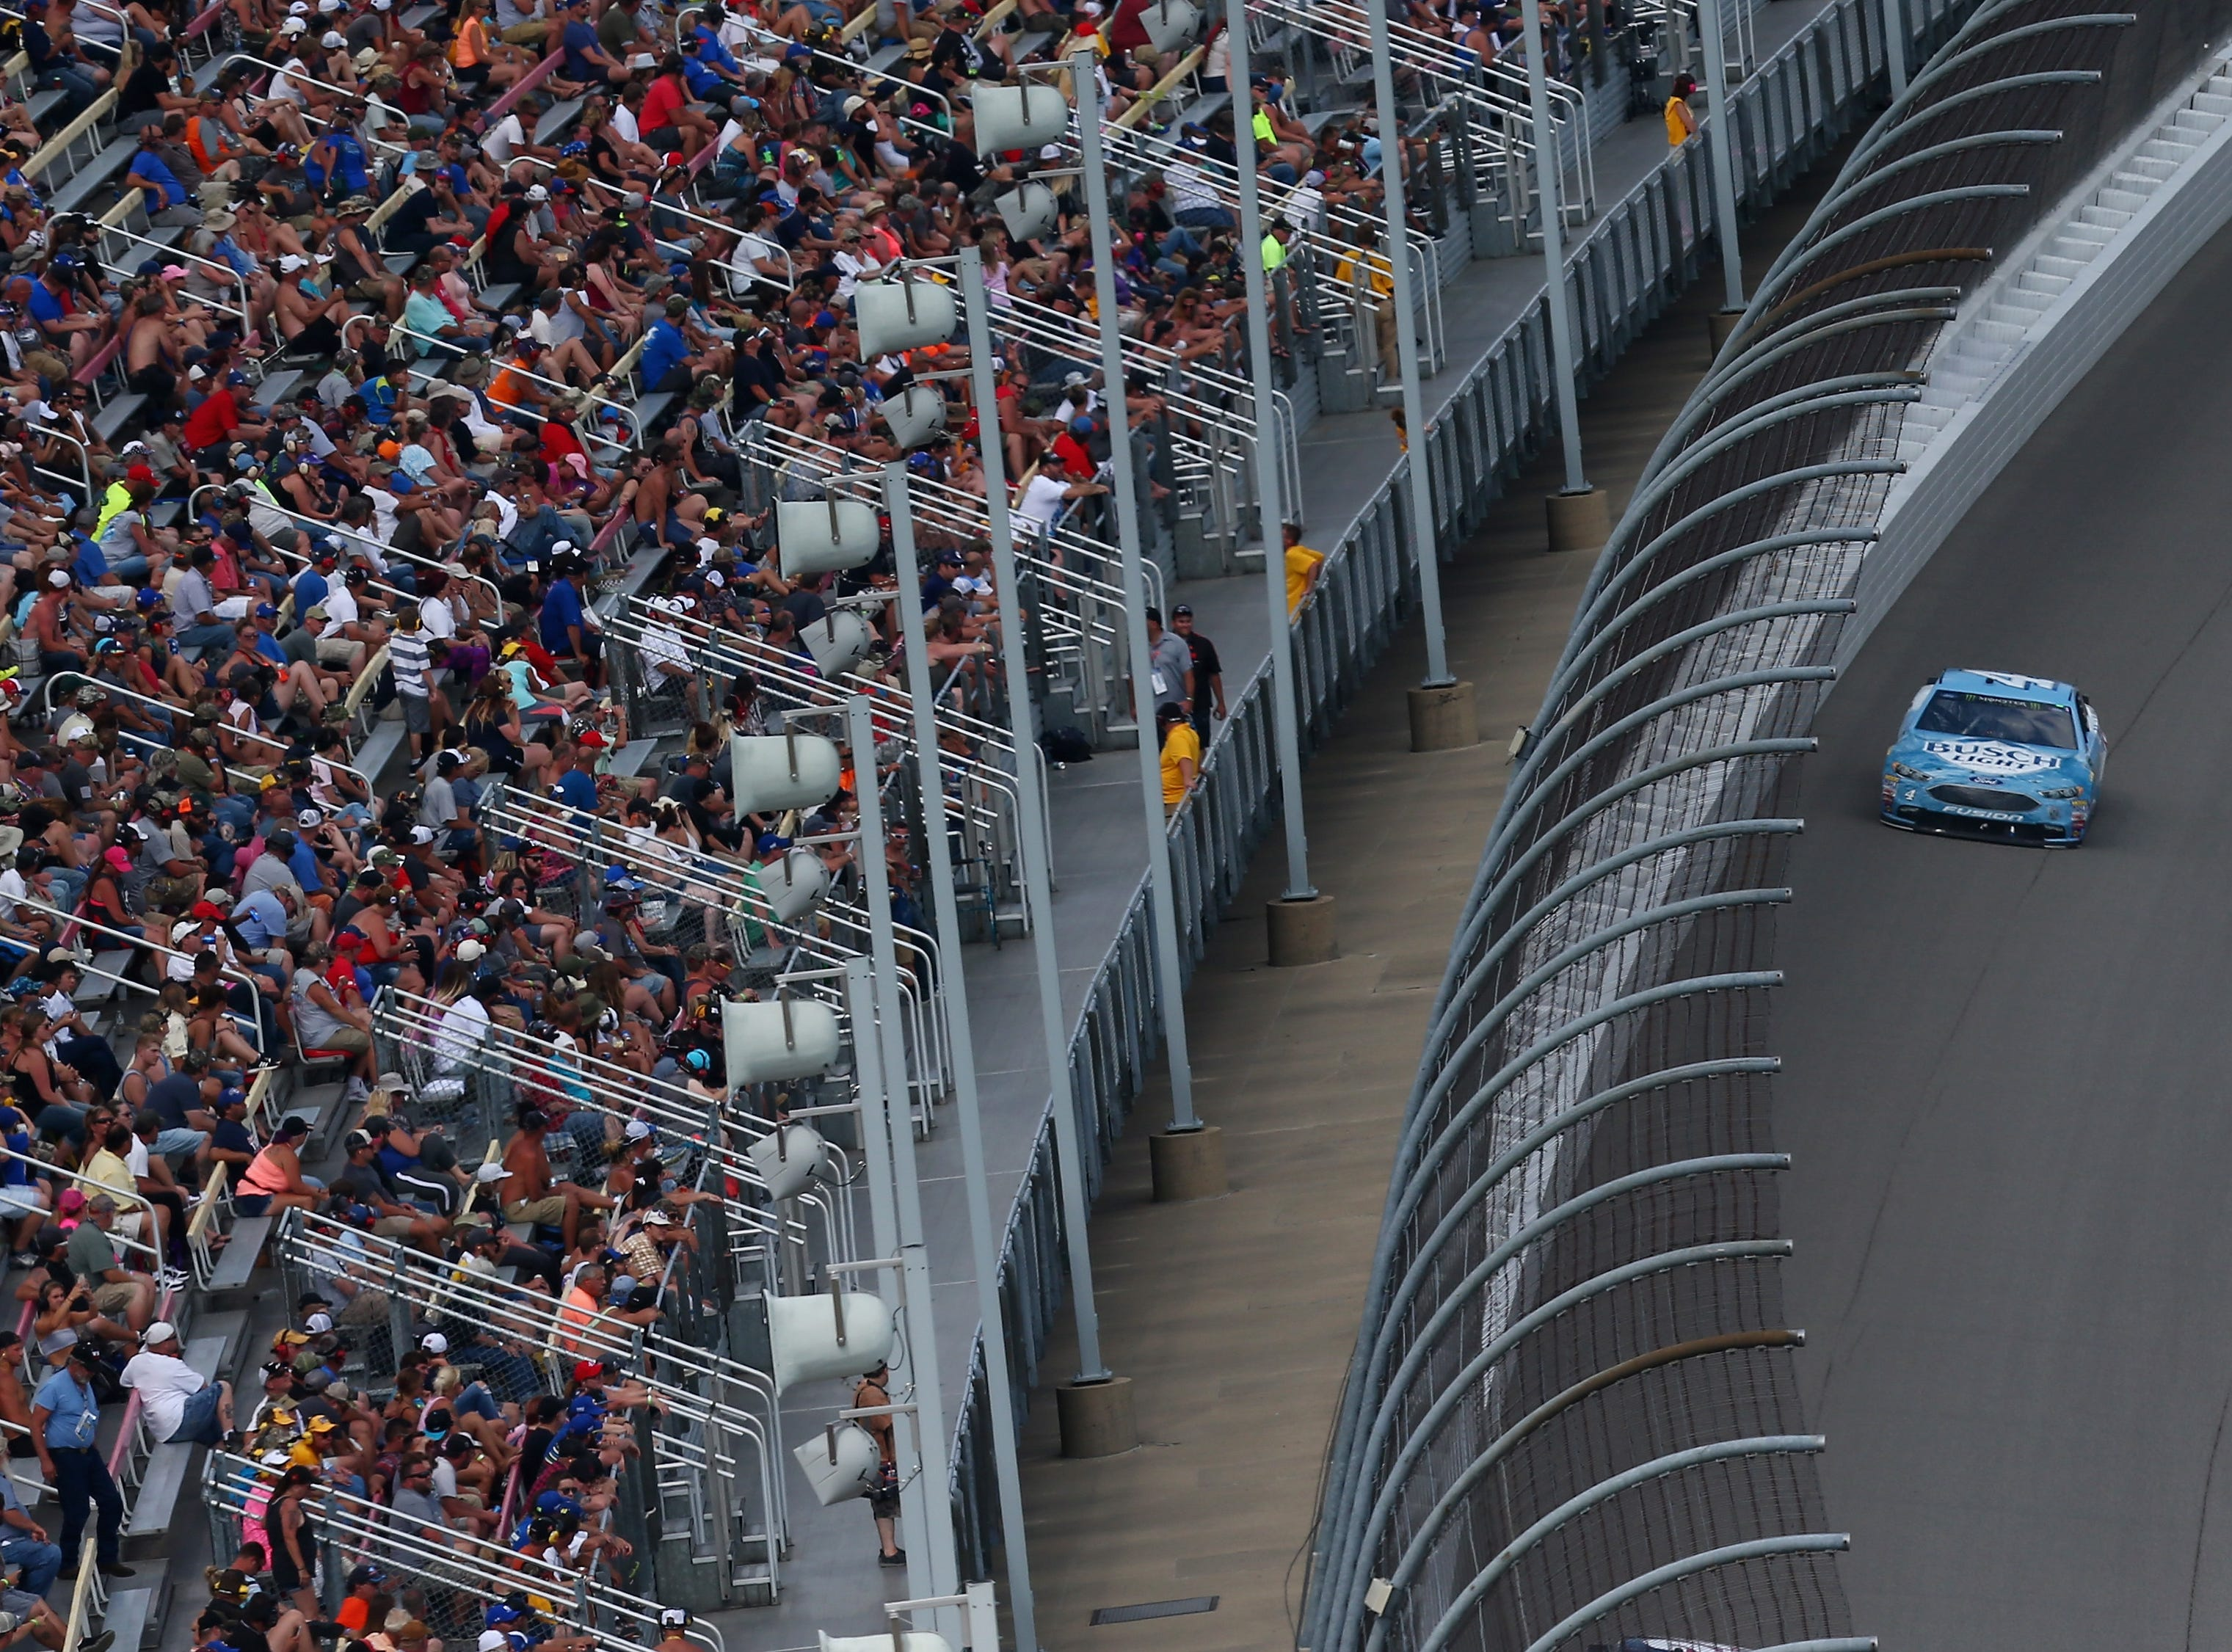 Kevin Harvick, driver of the No. 4 Busch Light/Mobil 1 Ford, races during the Monster Energy NASCAR Cup Series Consmers Energy 400 at Michigan International Speedway on August 12, 2018 in Brooklyn, Michigan.